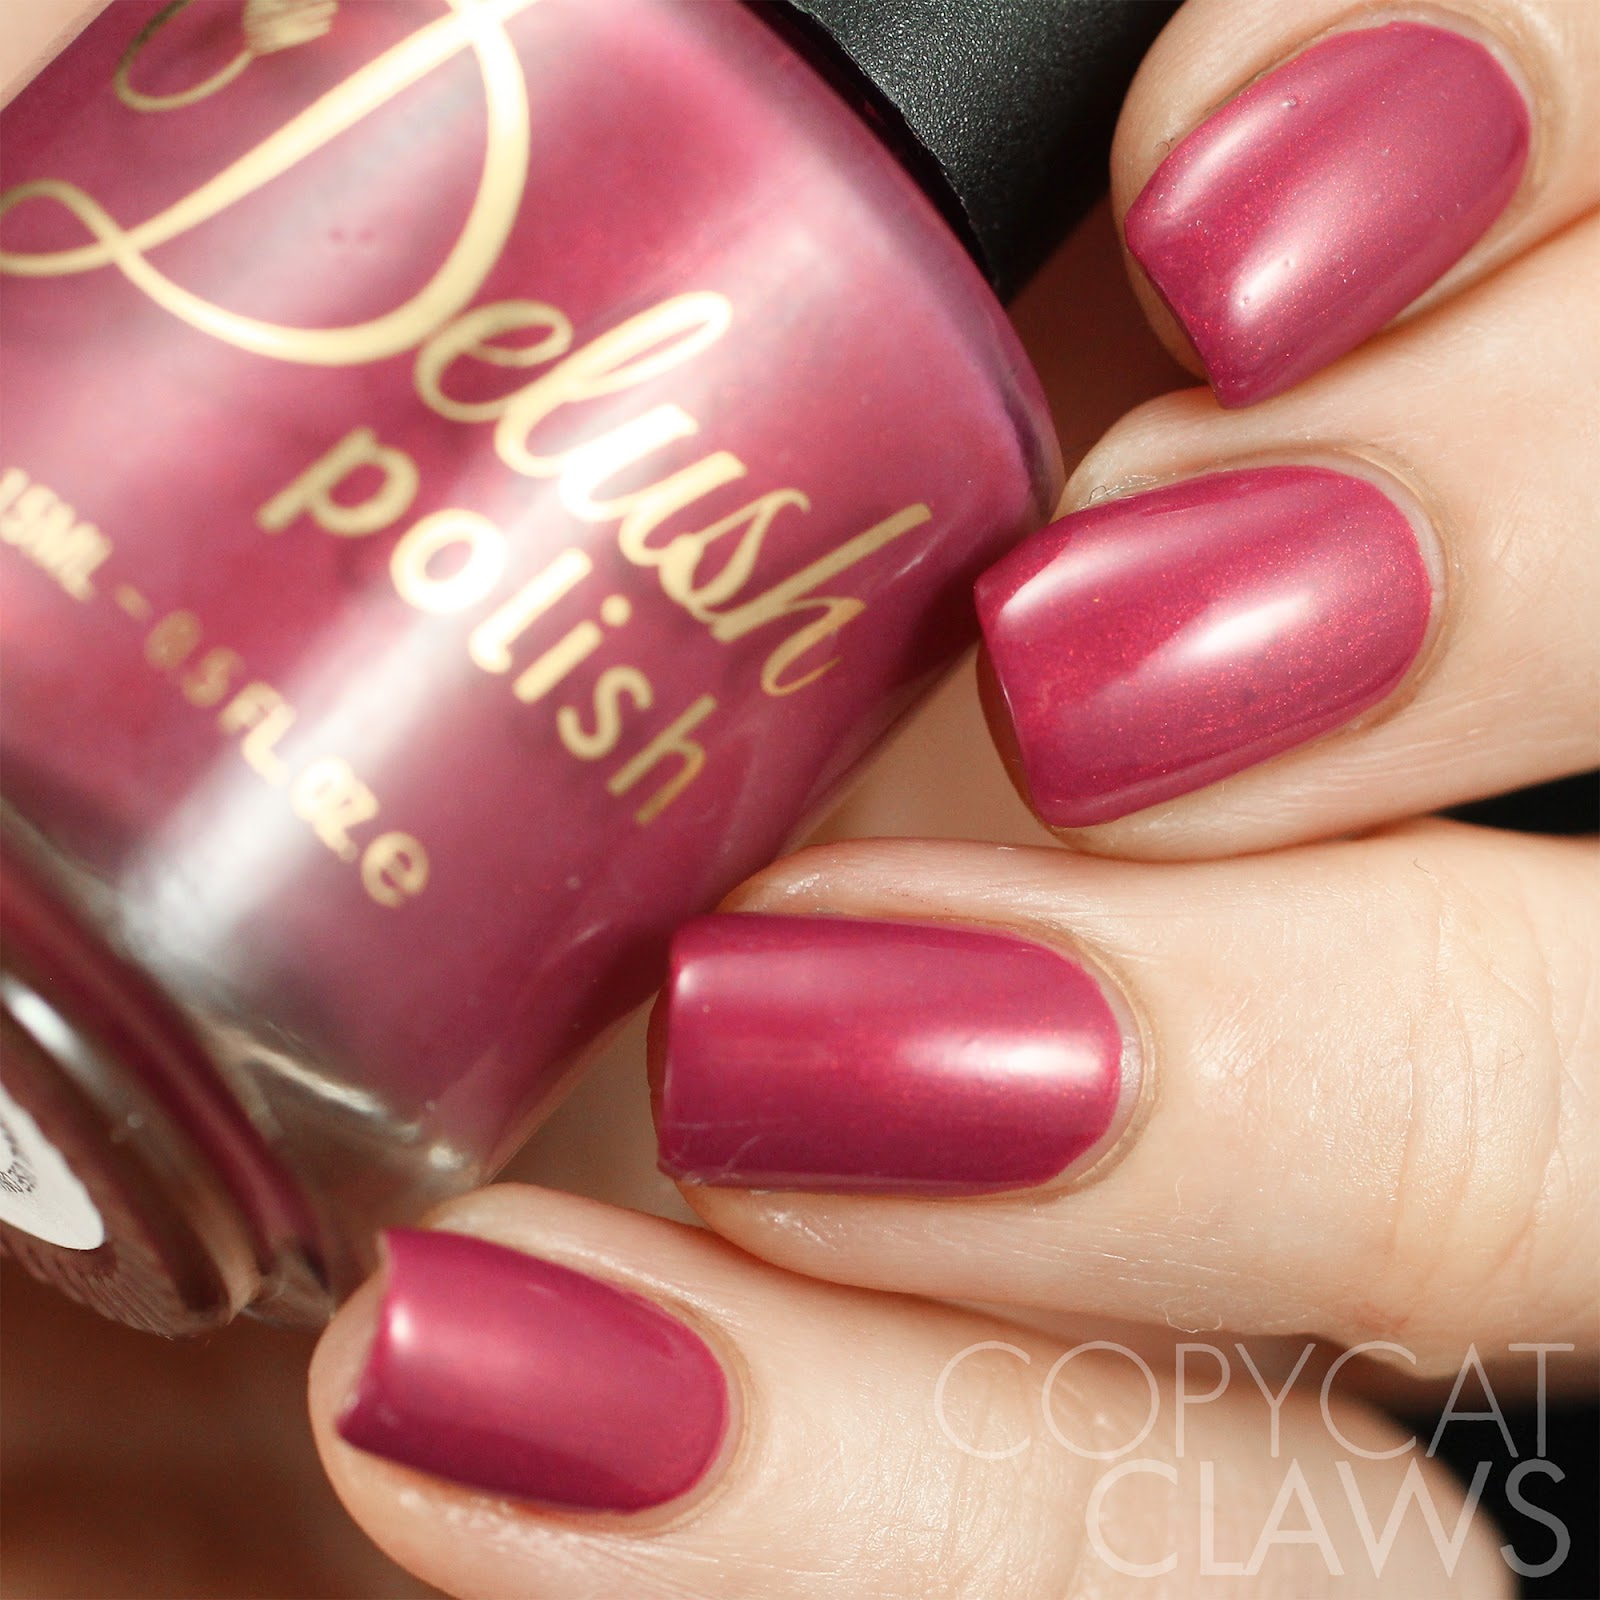 Copycat Claws: Delush Polish The Mermaid Diaries Collection Review